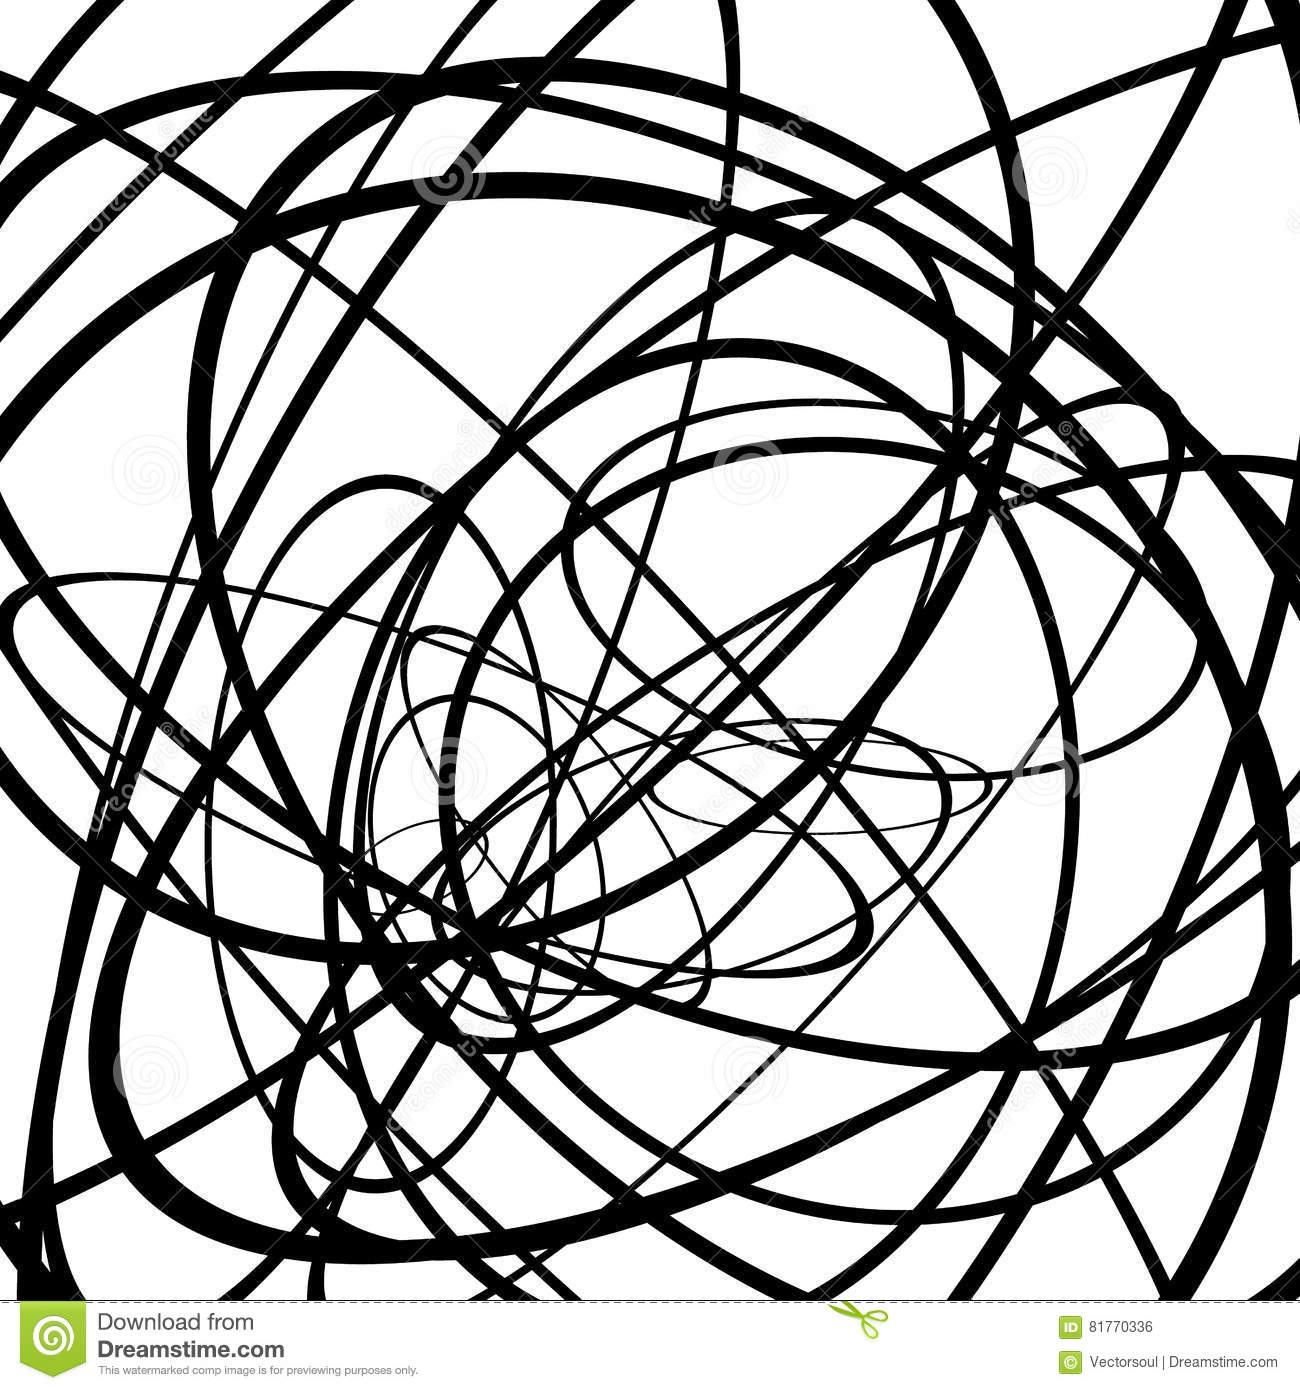 random circles ovals forming squiggly lines abstract artistic